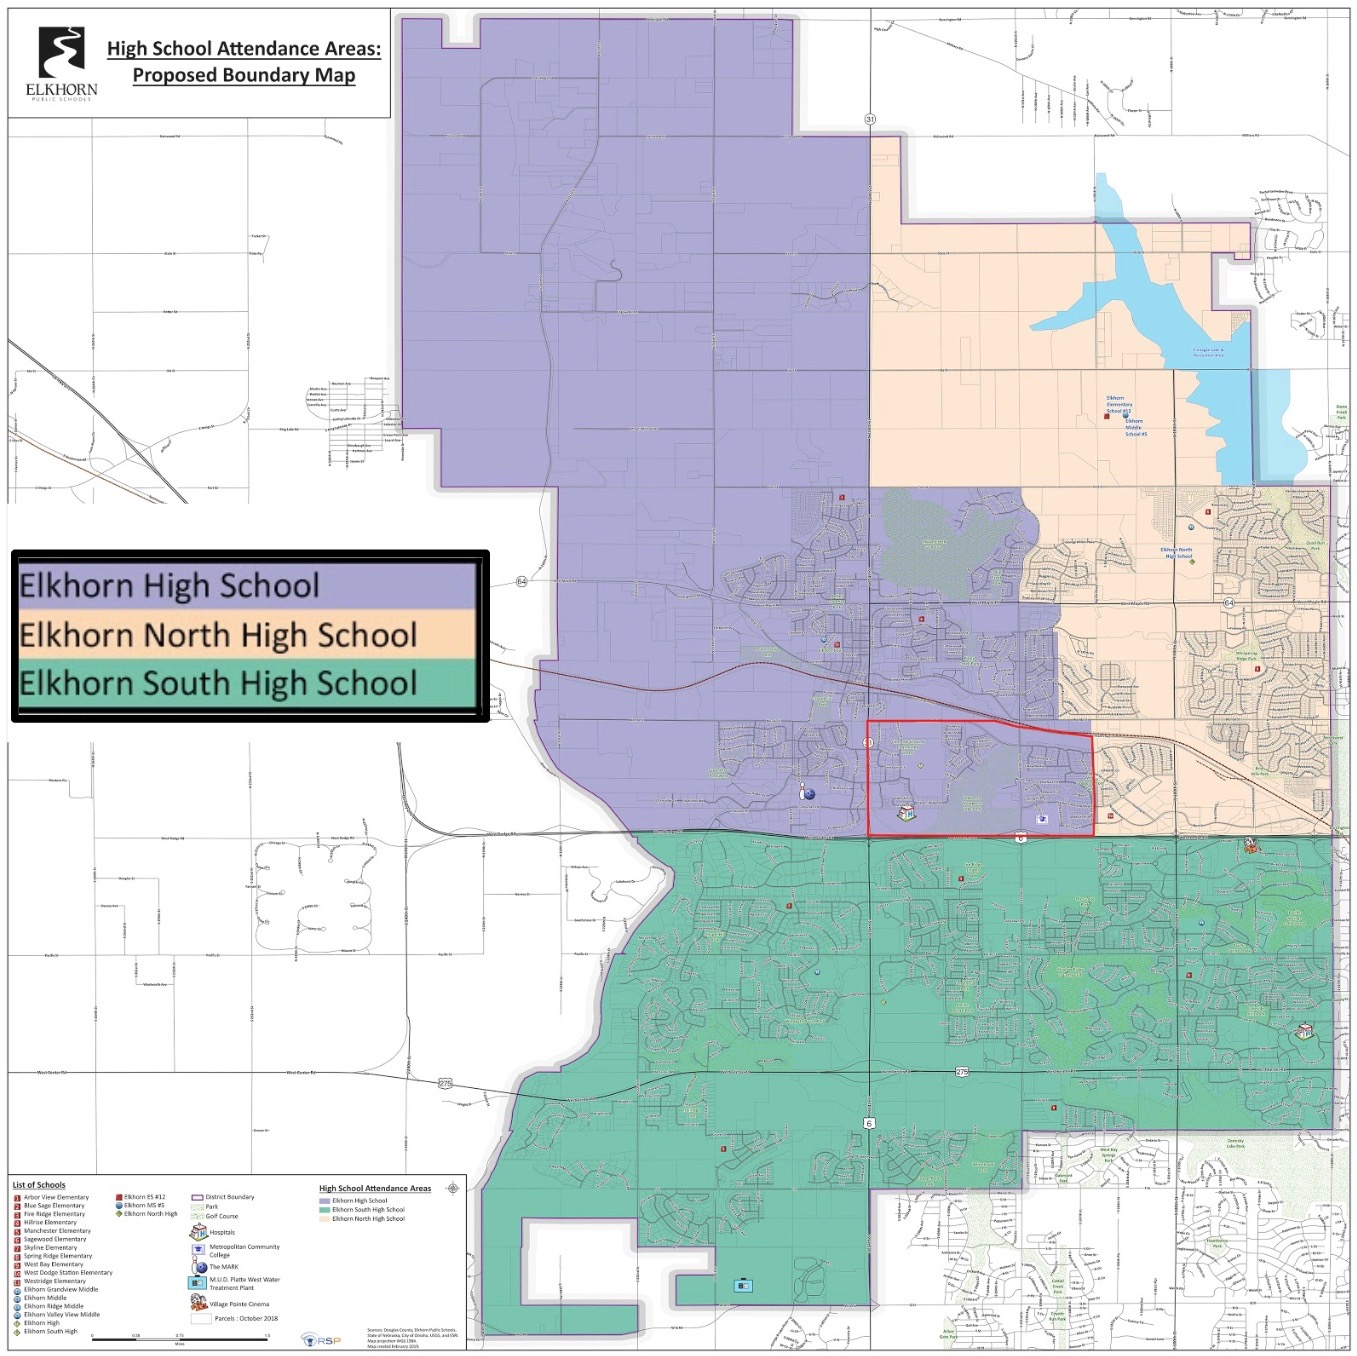 District boundaries for Elkhorn High and Elkhorn North as set by the Elkhorn School Board.